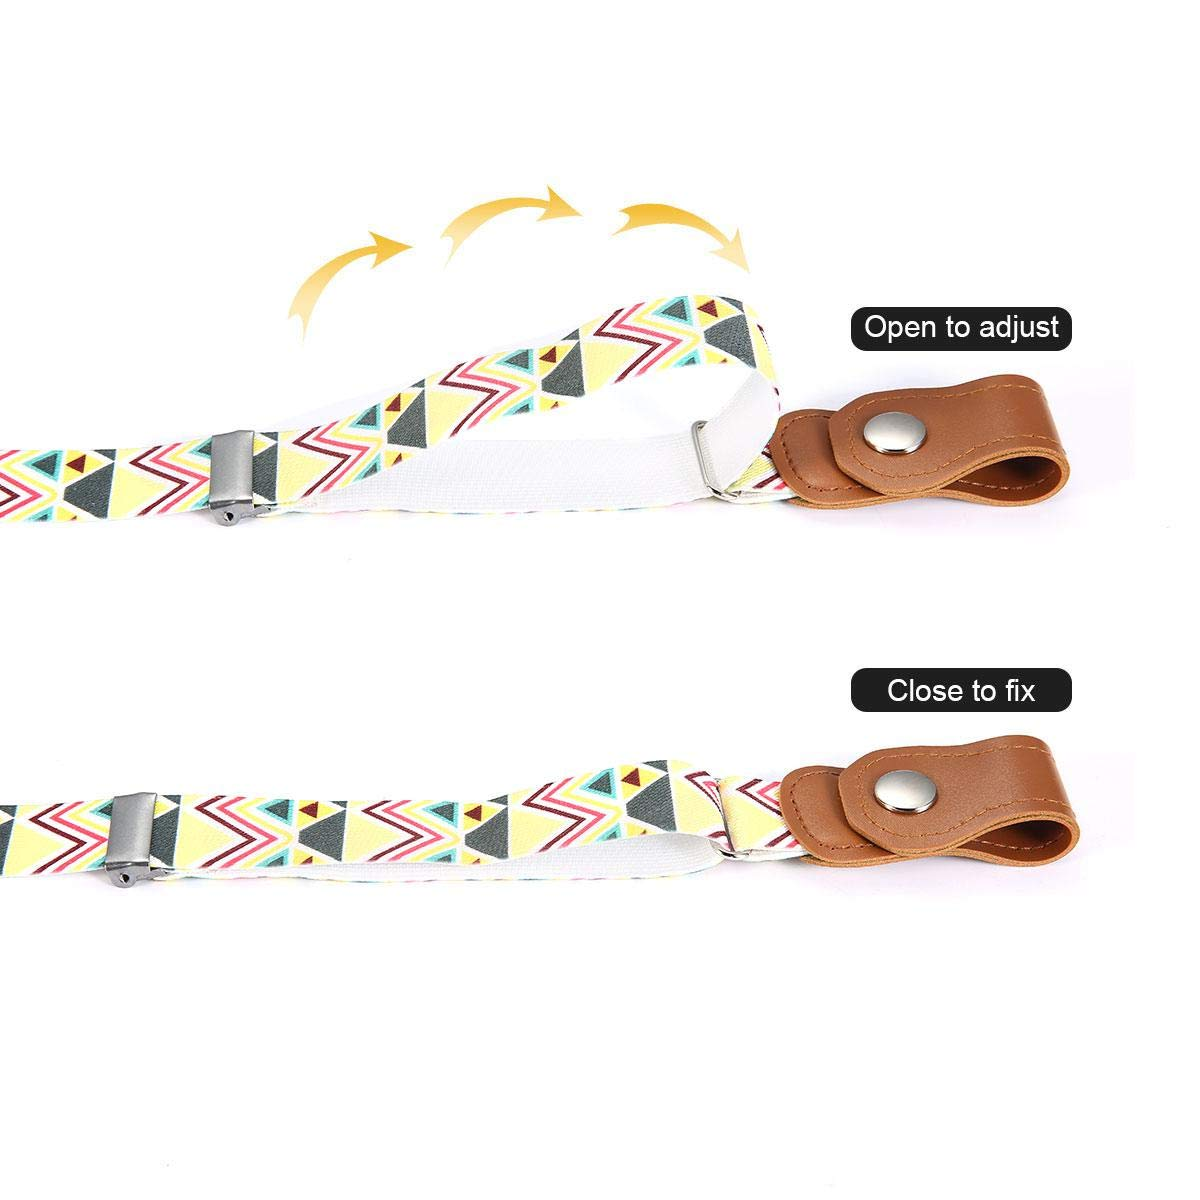 Womdee Kids Elastic Free Belts Perfect for Potty Training and School No-Buckle Adjustable Stretch Belts for Boys and Girls B